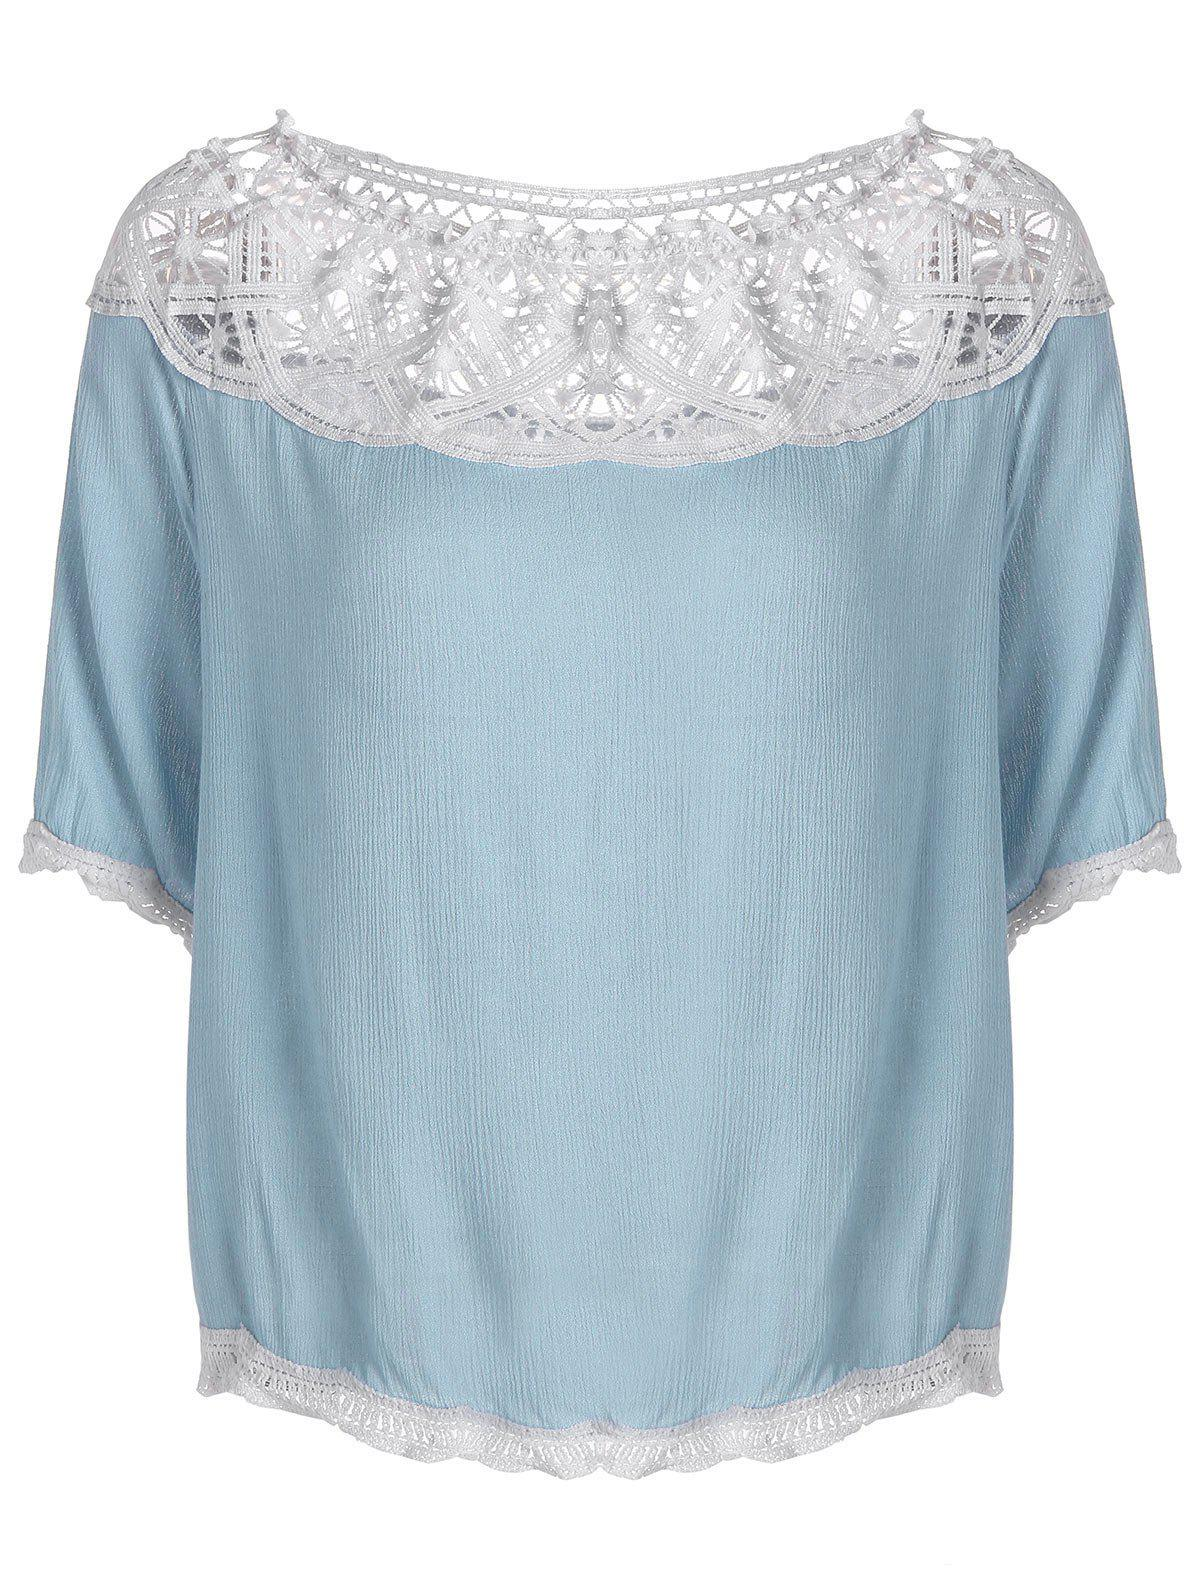 Off The Shoulder Lace Openwork Blosue - CLOUDY M